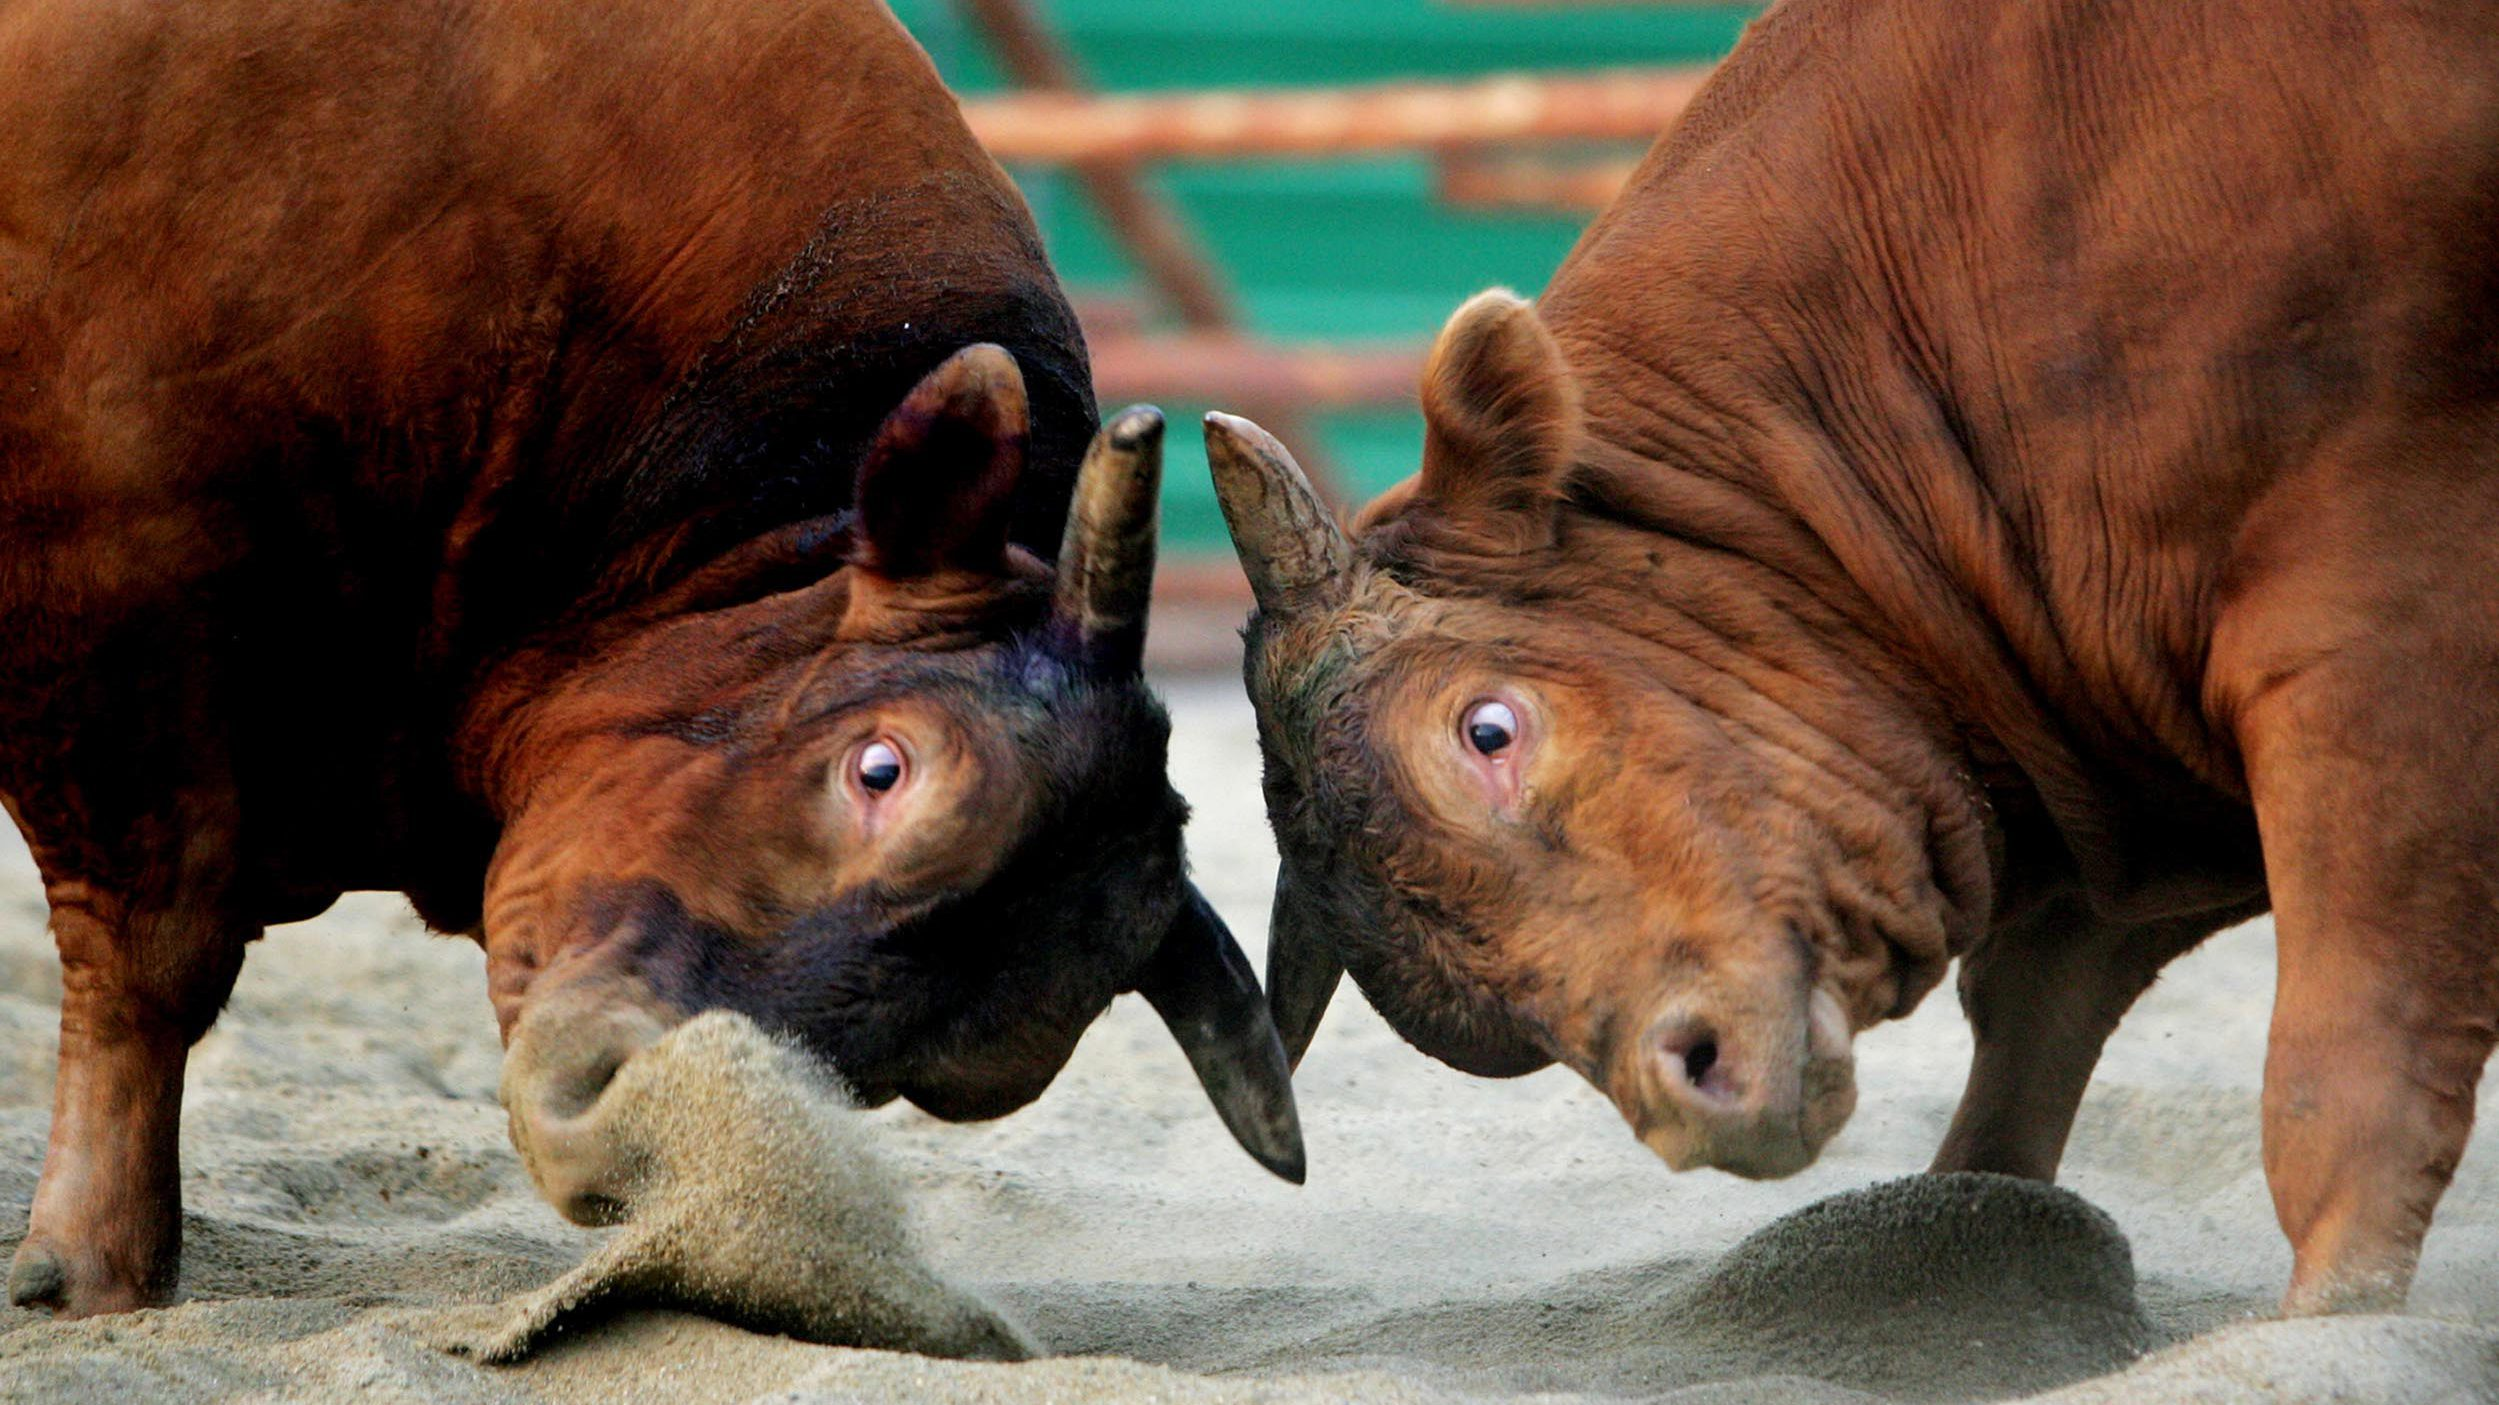 South Korean fighting bulls lock horns with each other during a 2005 Seoul bullfighting festival April 30, 2005. About 100 domestic fighting bulls participated in the traditional tournament ending on May 15.